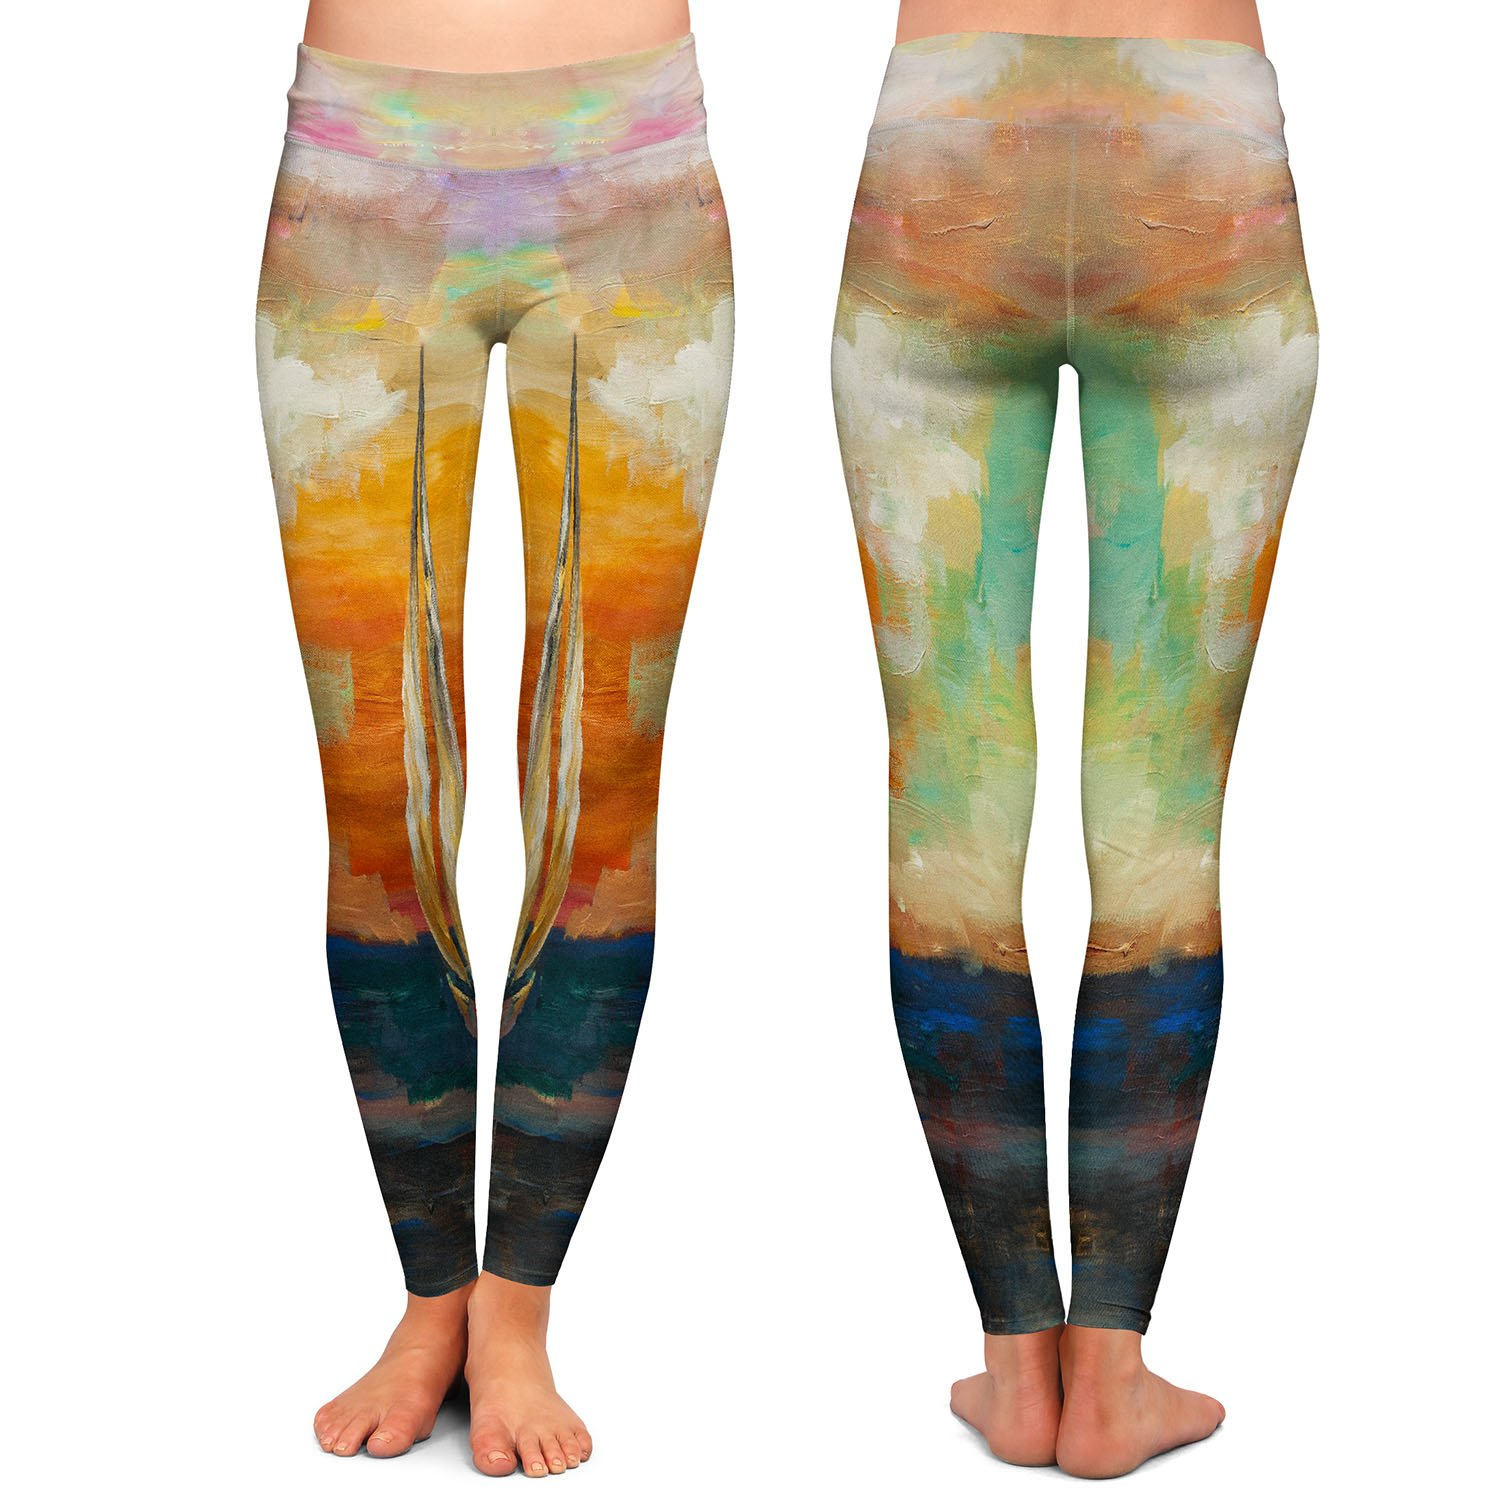 Athletic Yoga Leggings from DiaNoche Designs by Lam Fuk Tim Sunset Sailing 1